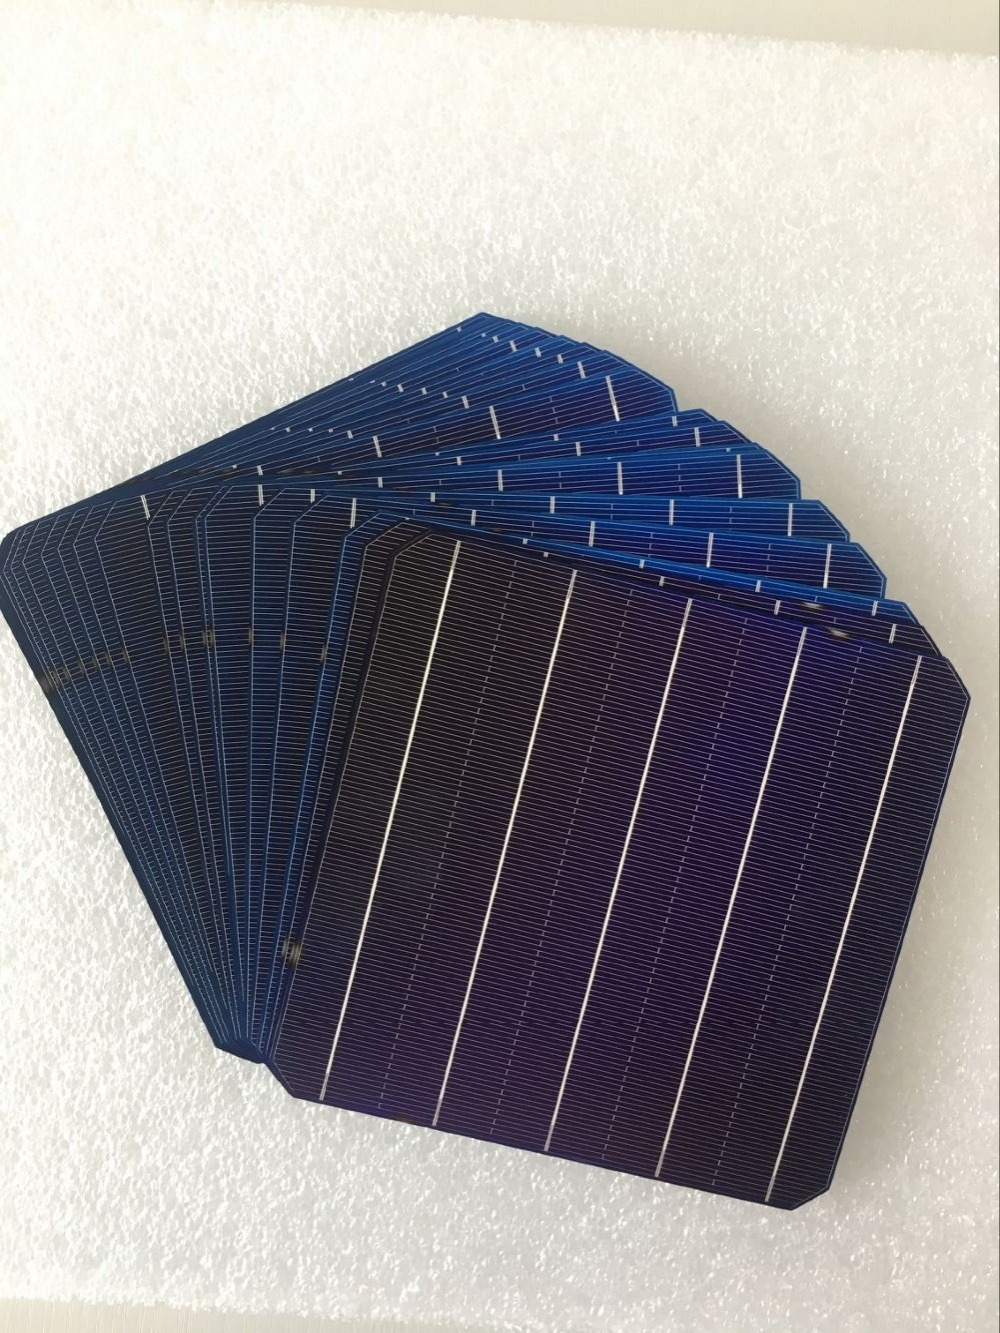 100Pcs 5W 0.5V 20.6% Effciency Grade A 156 * 156MM Photovoltaic Mono Monocrystalline Silicon Solar Cell 6x6 For Solar Panel image